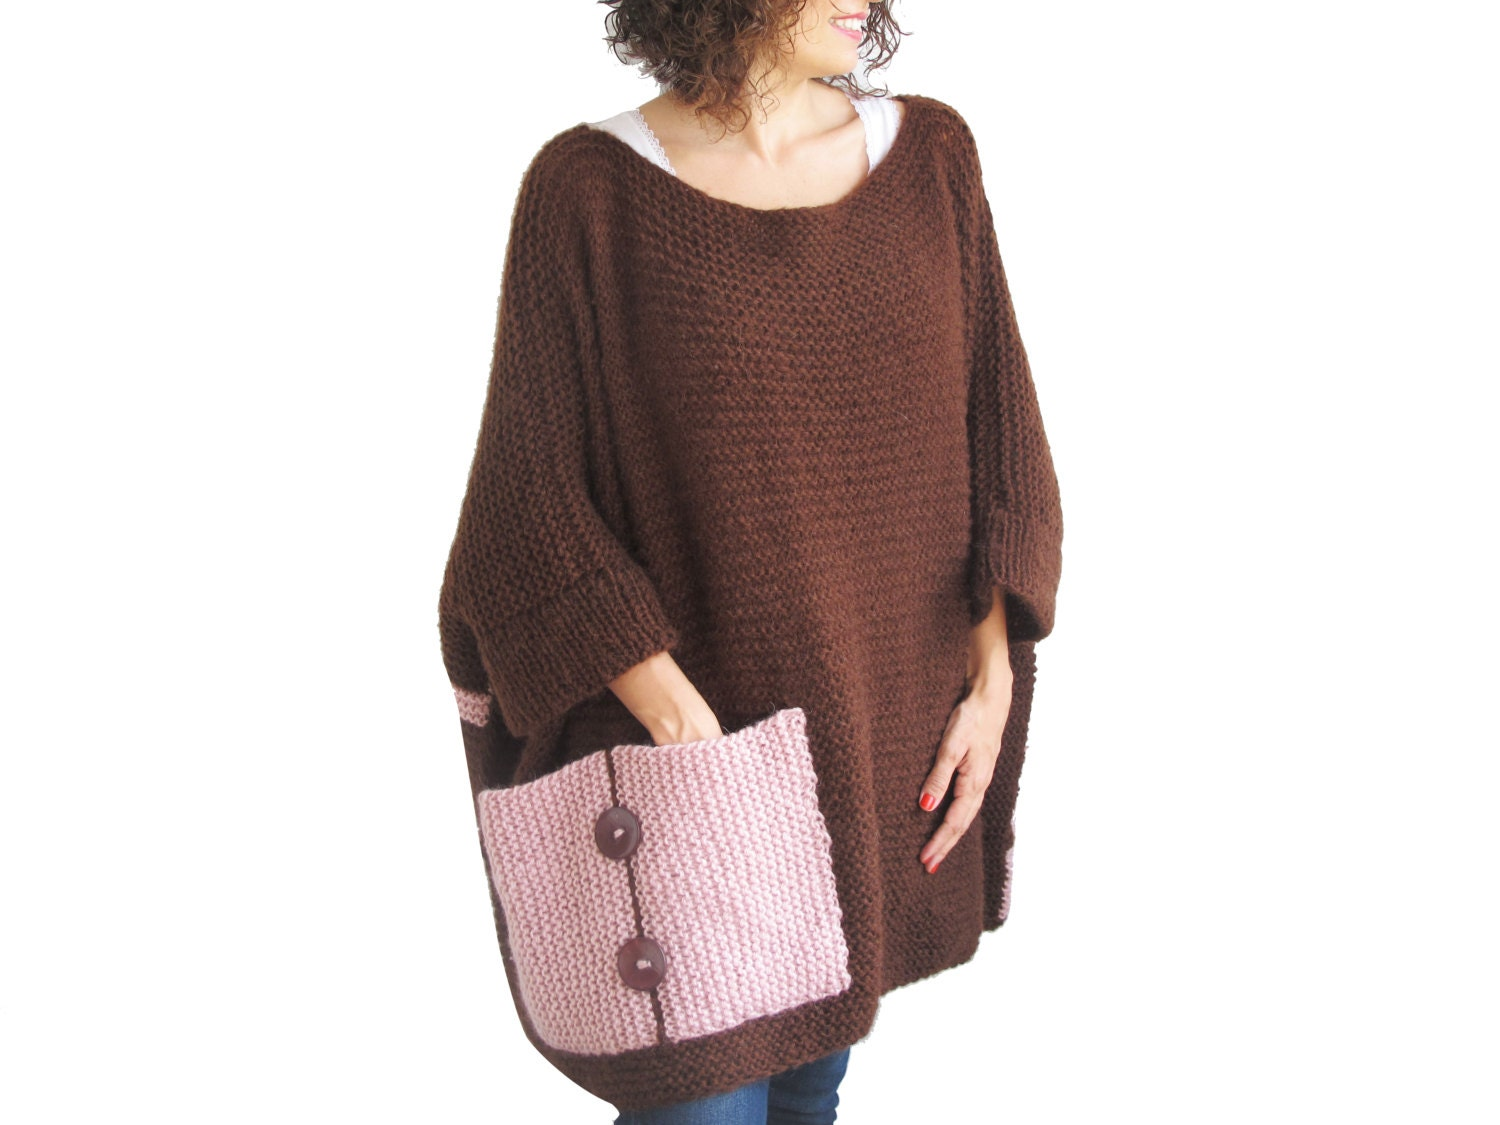 Plus Size Over Size Sweater Brown Pink Hand Knitted